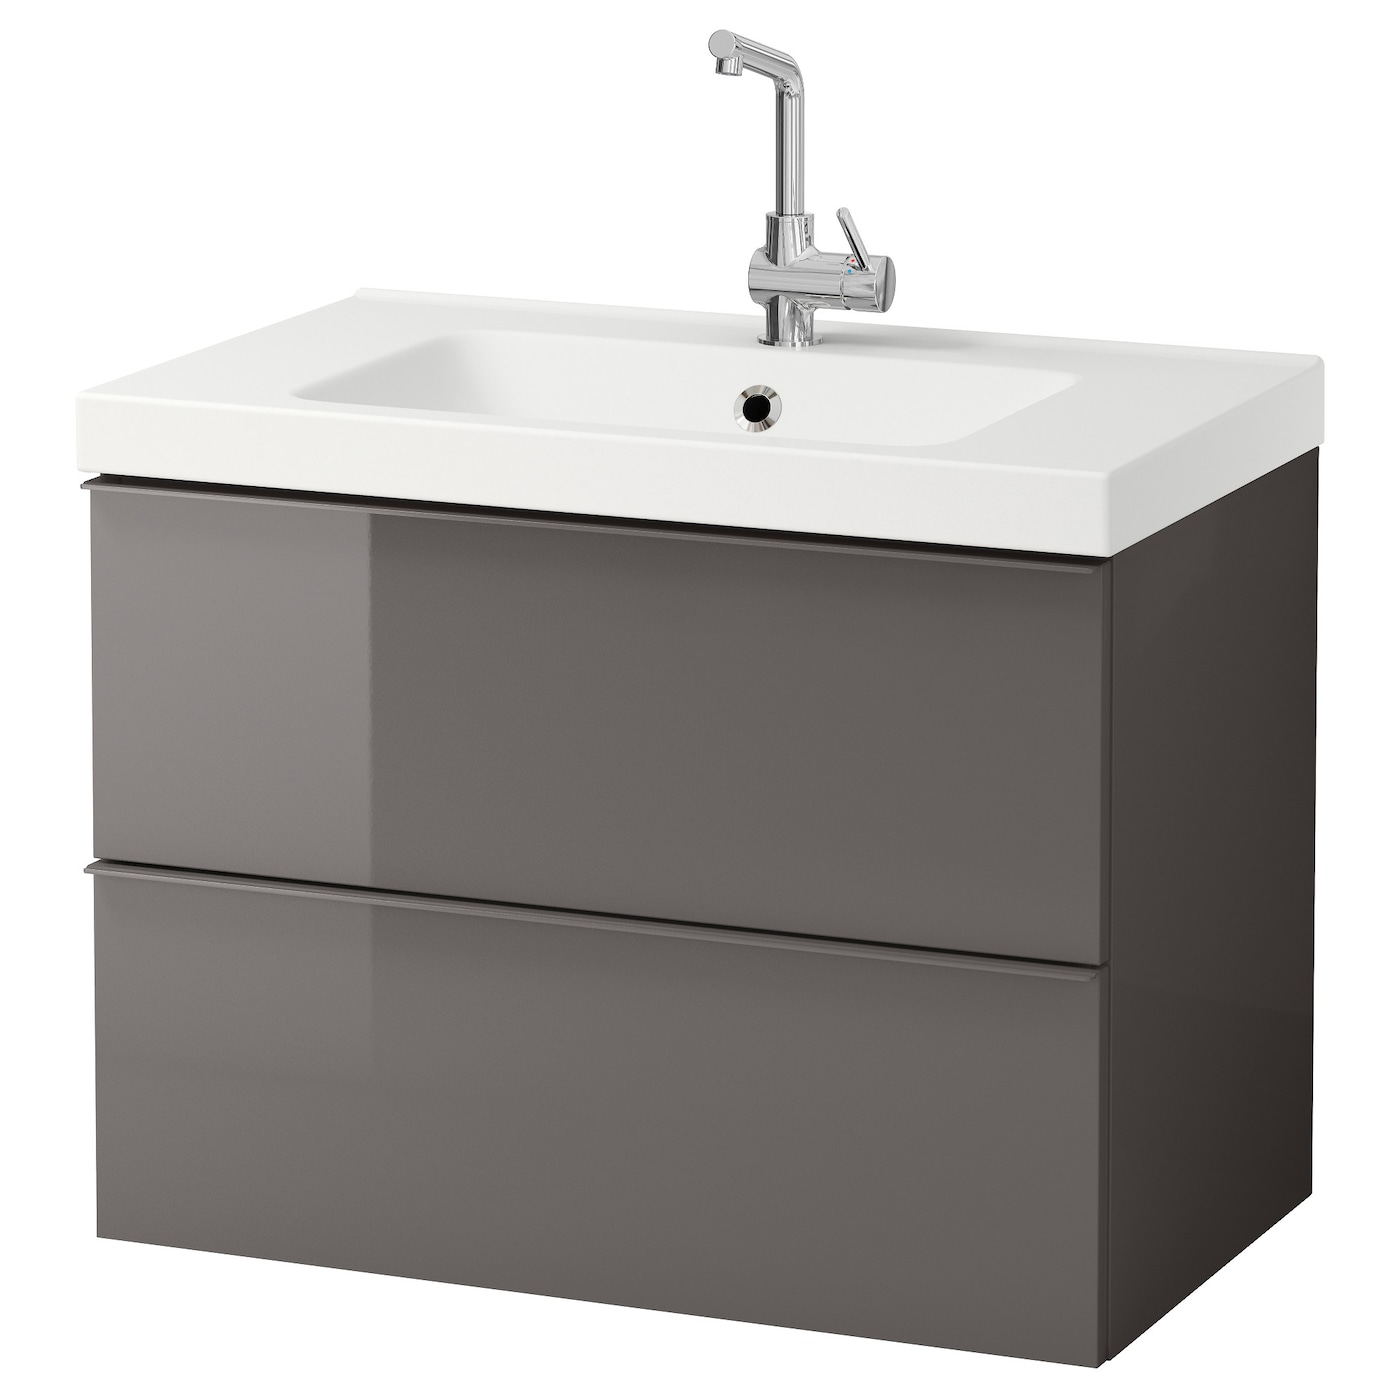 ikea bathroom sinks and cabinets odensvik godmorgon wash stand with 2 drawers high gloss 23514